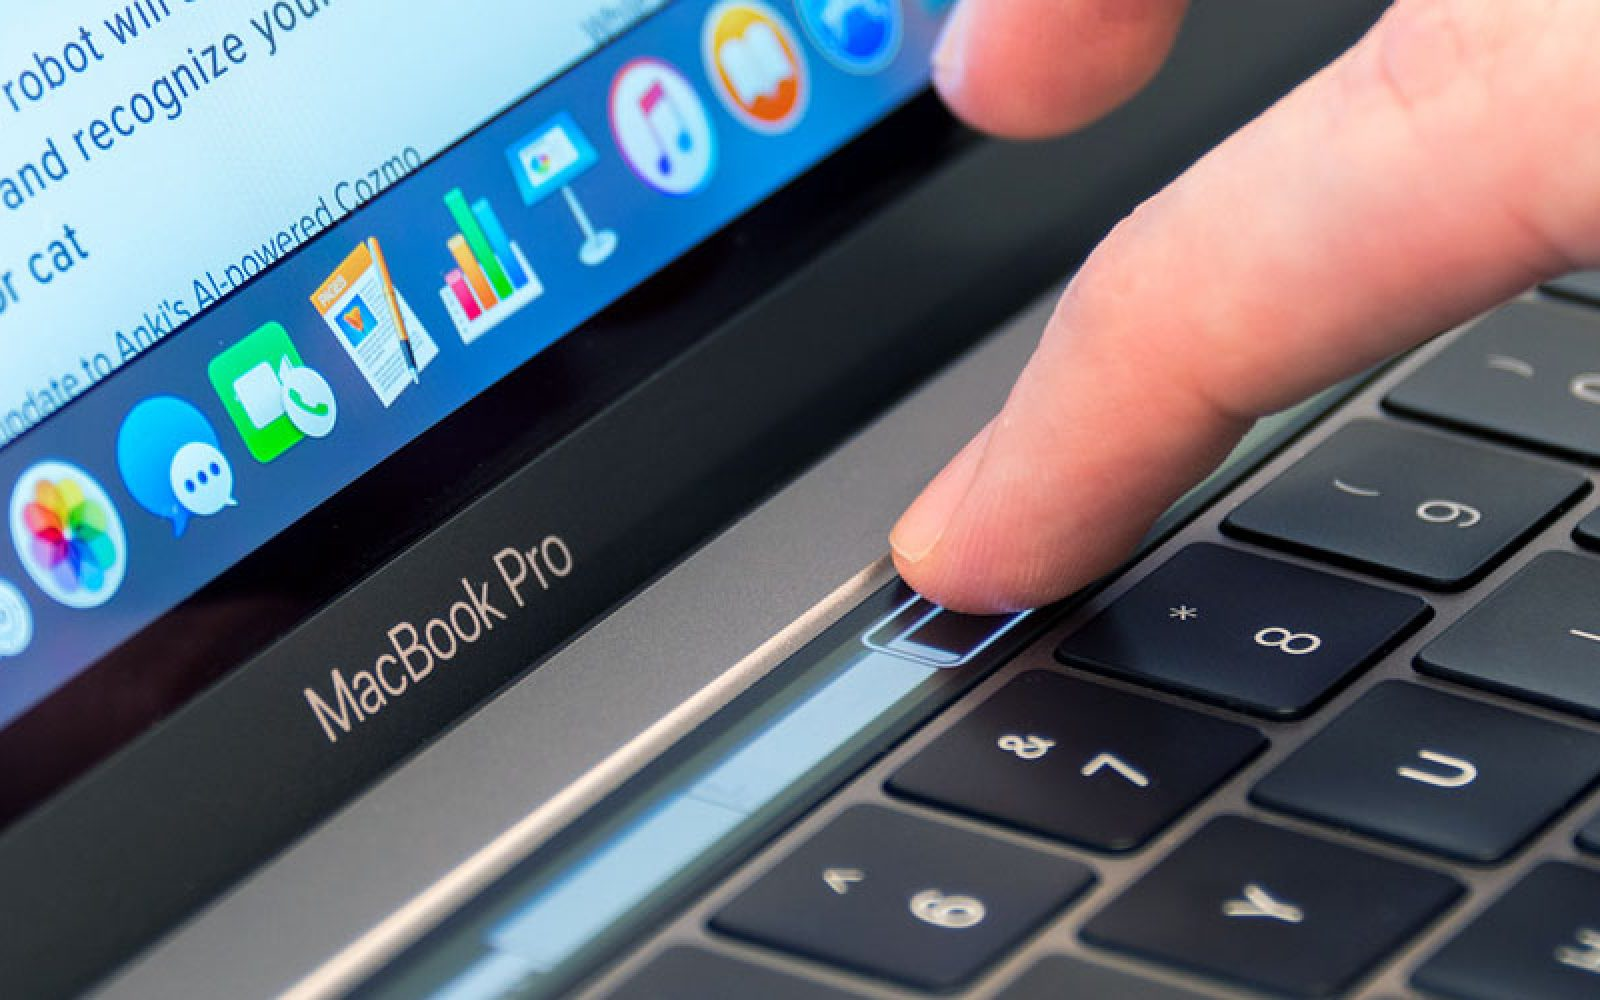 Bar exam applicants required to disable MacBook Pro Touch